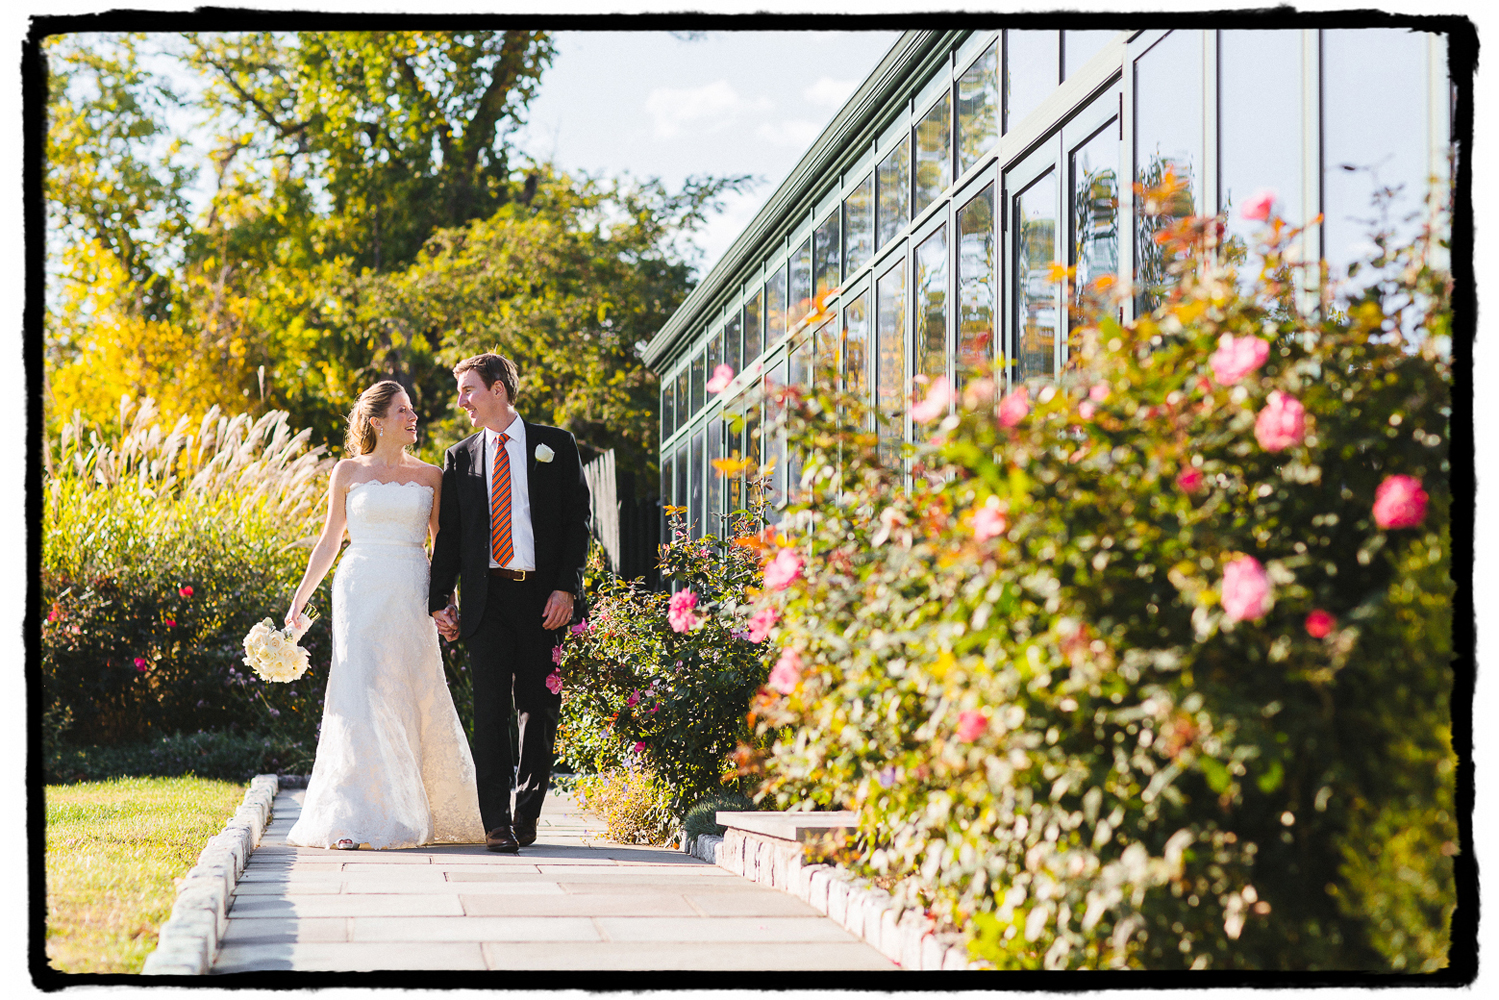 Noelle and Tim were radiant on their wedding day as they walked along this path at Highlands Country Club in the Hudson Valley.